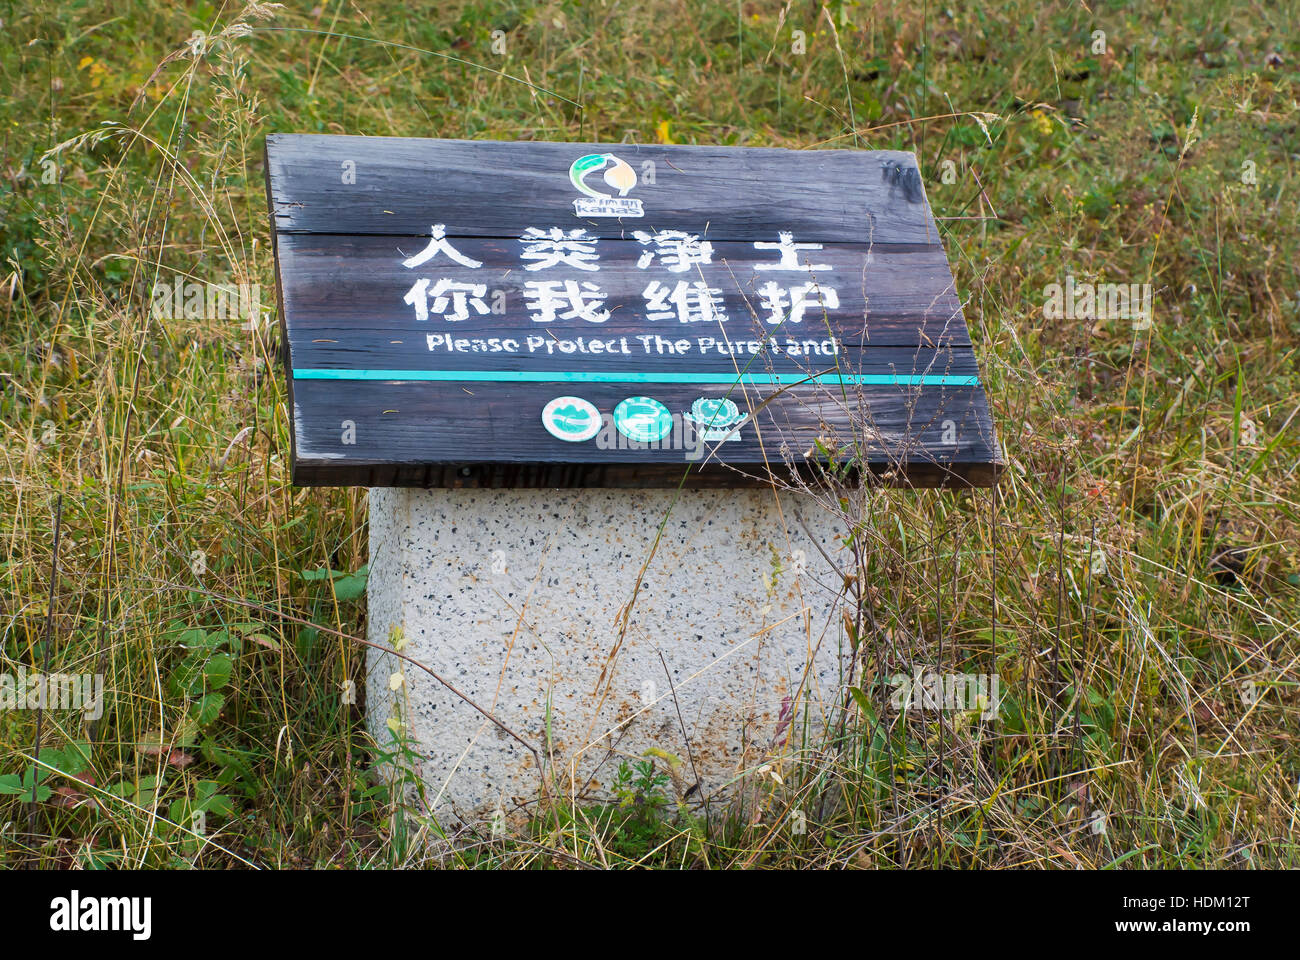 Sign Posted in Lawn - Kanas Region, China - Stock Image